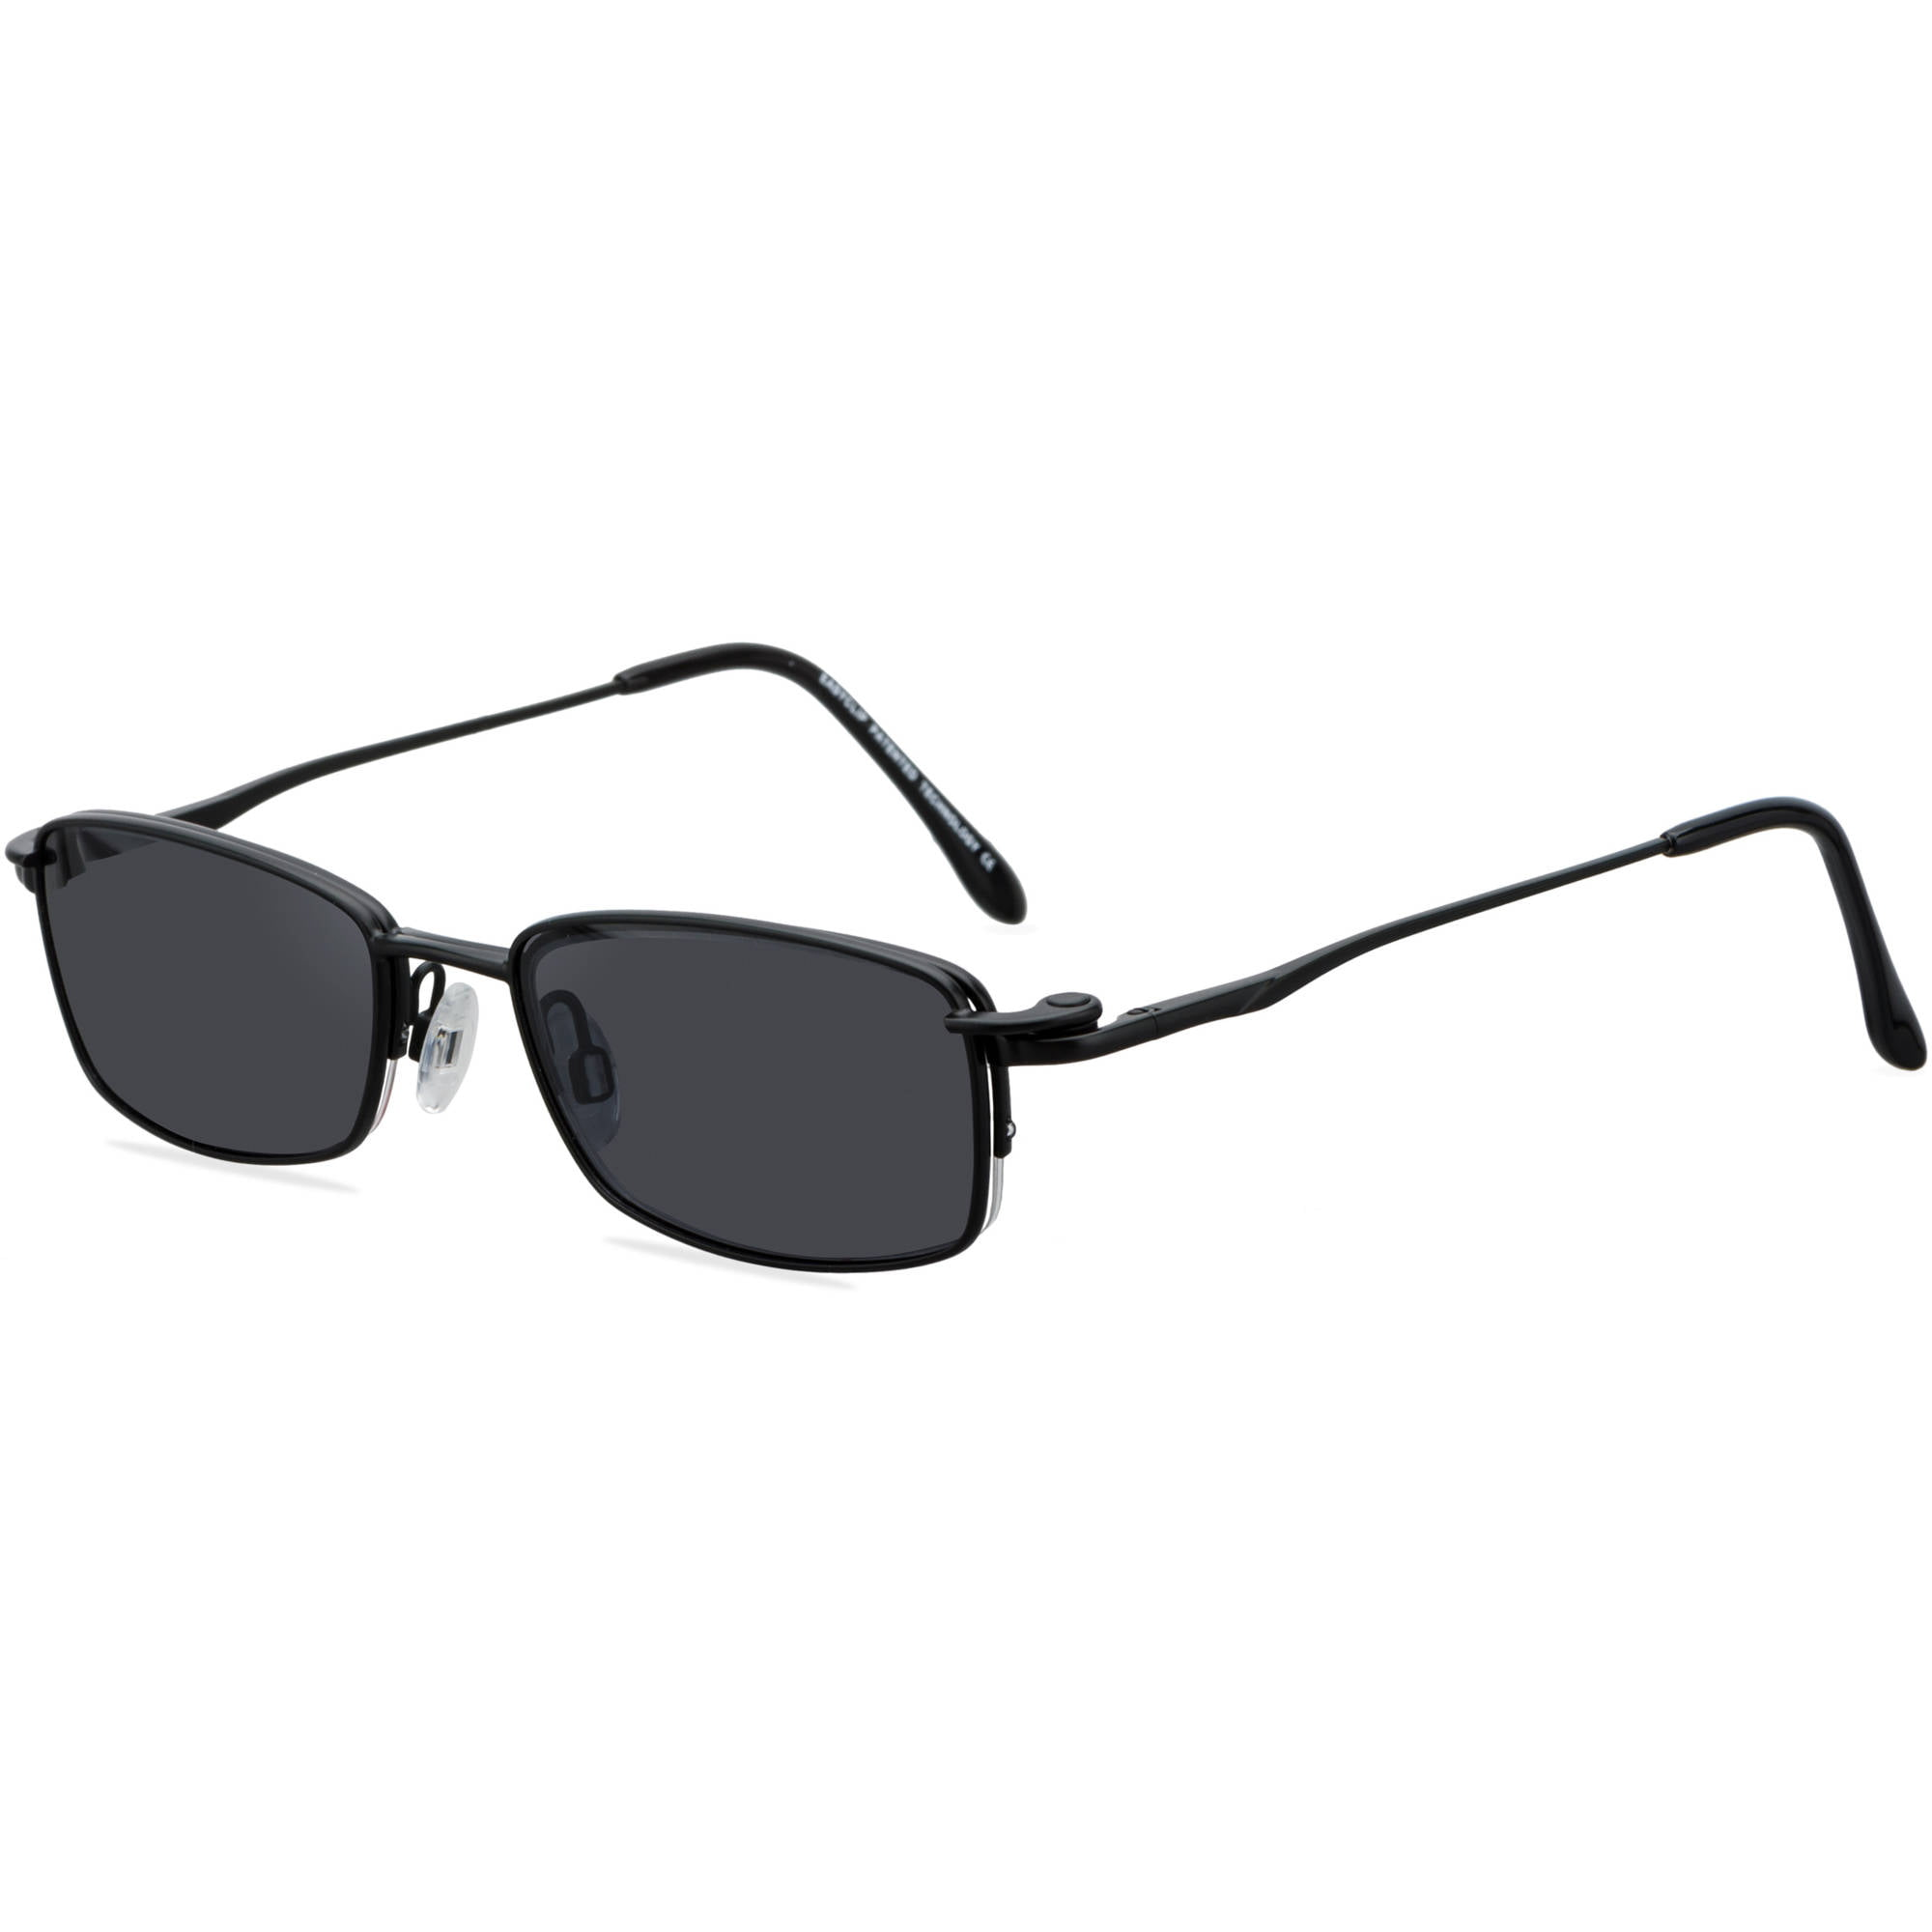 Magnetic Sunglasses For Prescription  easyclip mens prescription glasses ec173 black com